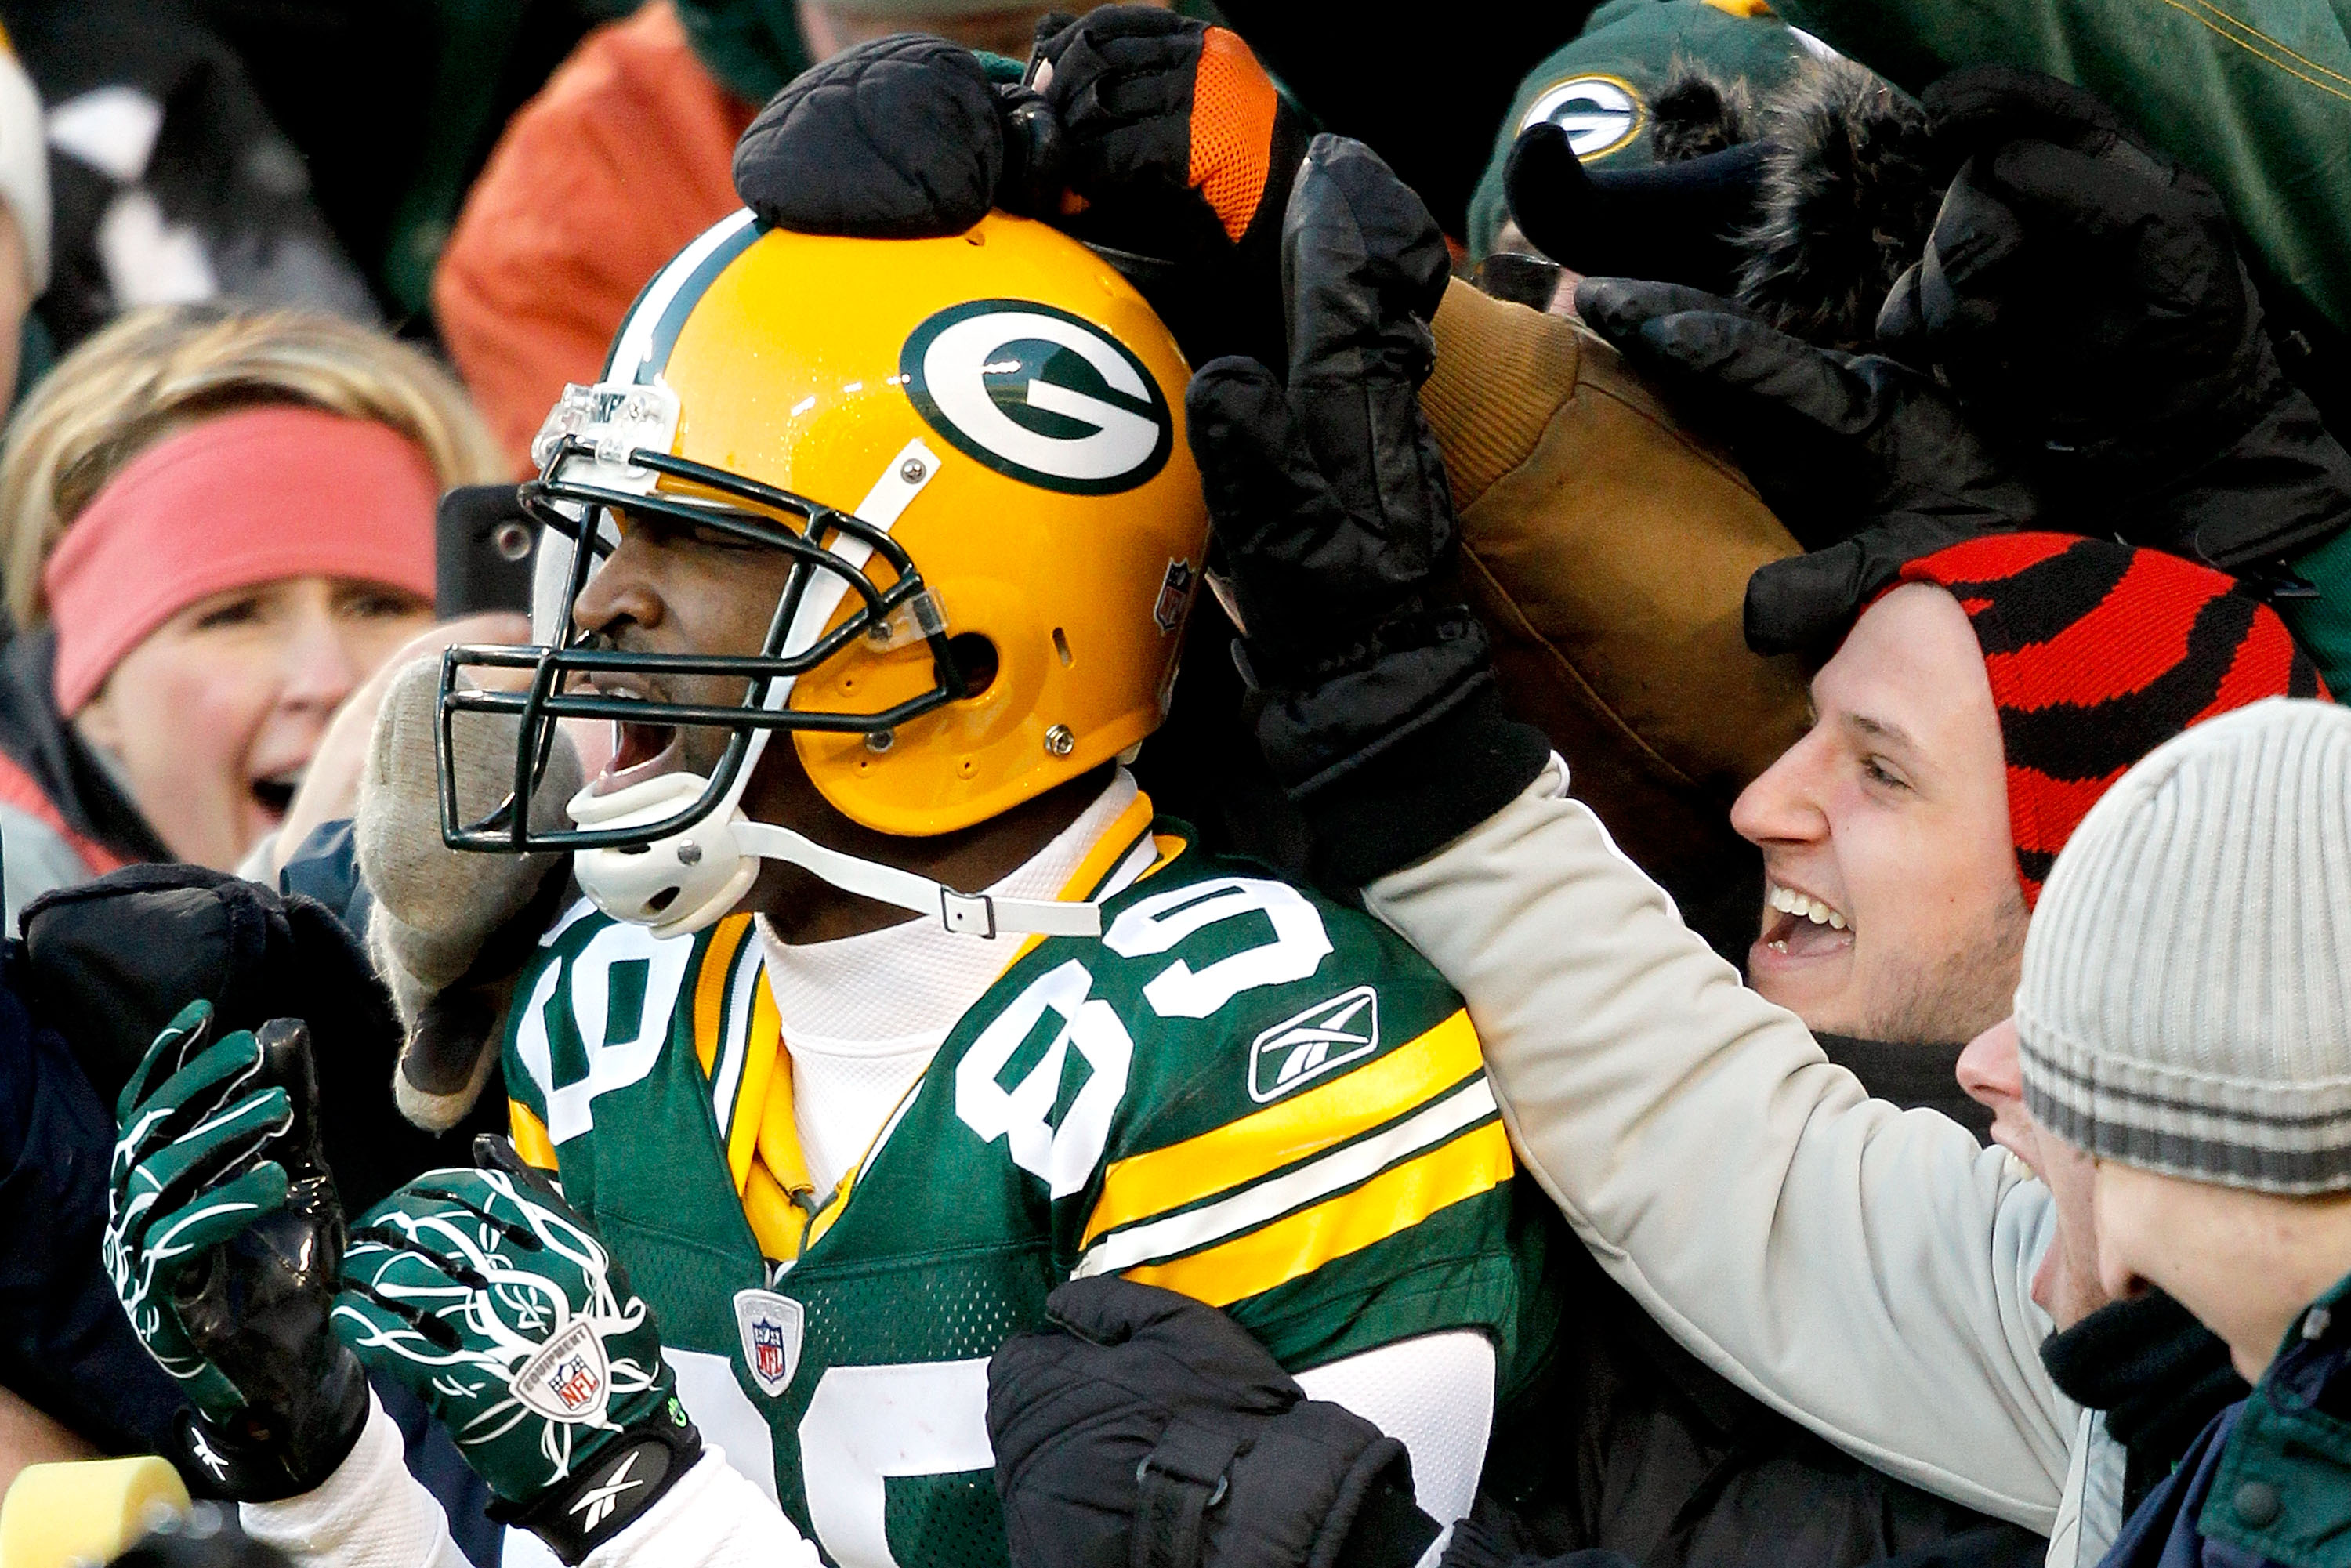 GREEN BAY, WI - DECEMBER 26:  James Jones #89 of the Green Bay Packers leaps into the stands after scoring a touchdown against the New York Giants at Lambeau Field on December 26, 2010 in Green Bay, Wisconsin.  (Photo by Matthew Stockman/Getty Images)